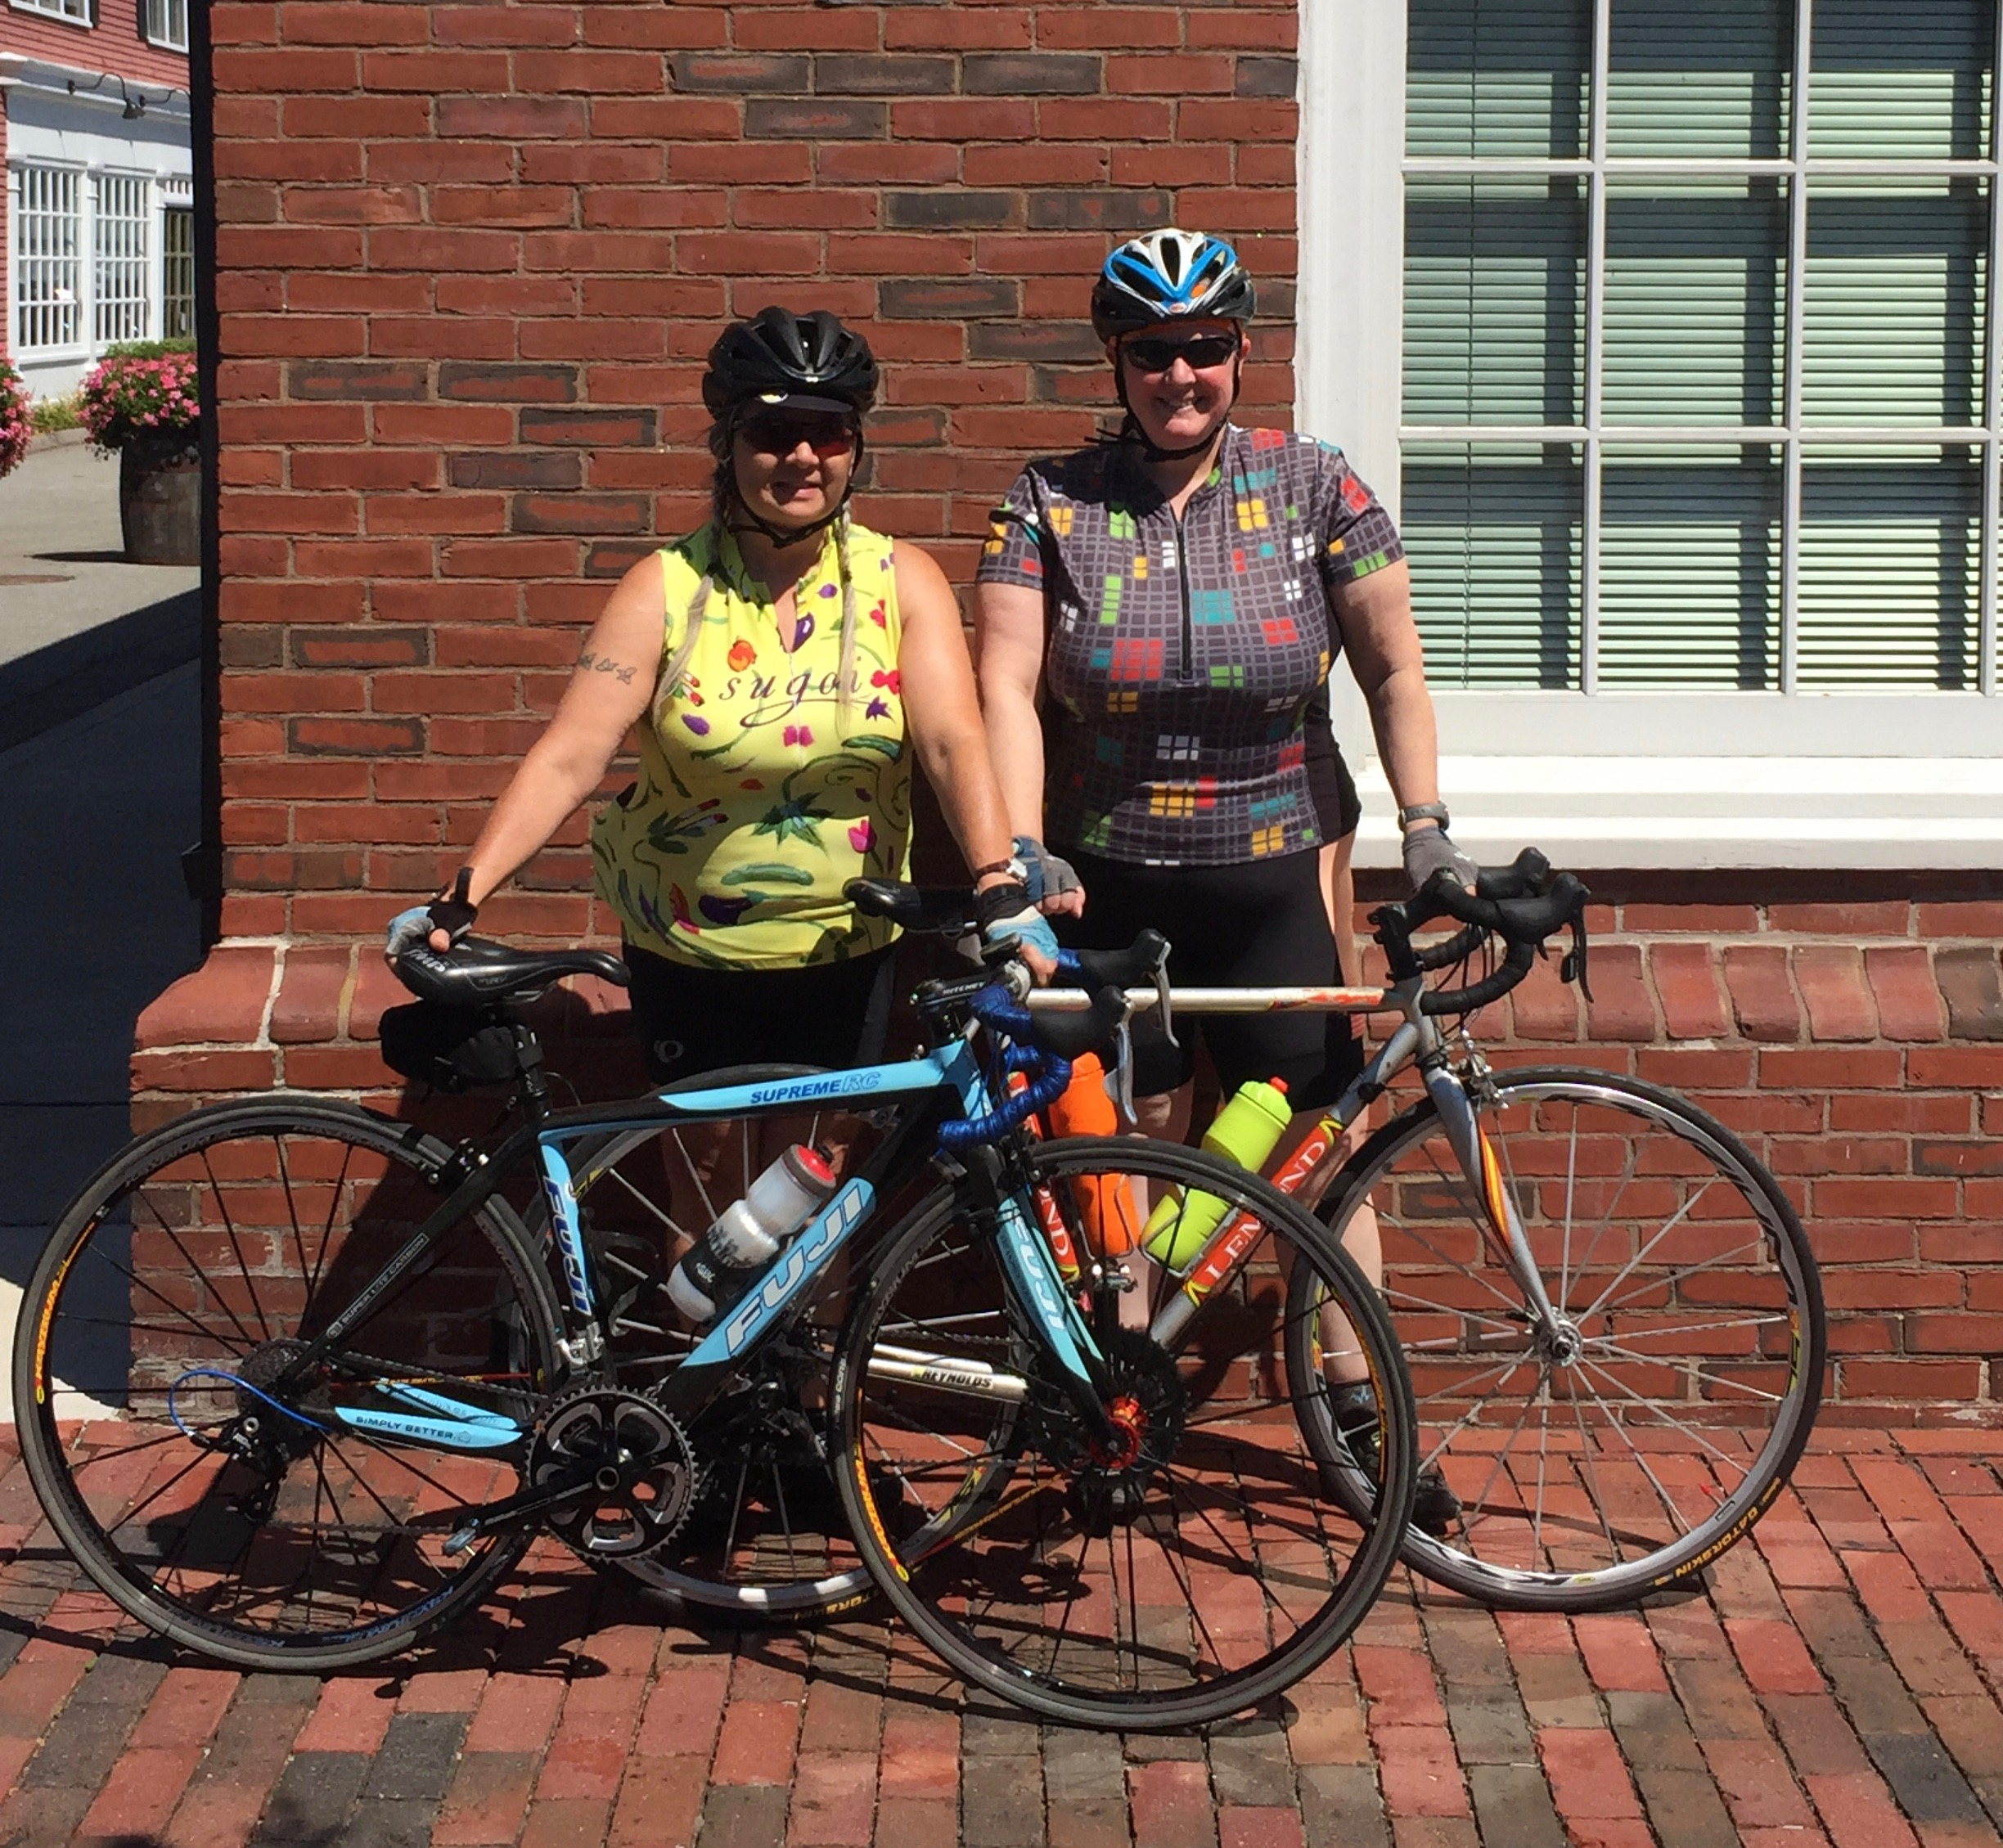 Pata (on left) and Catherine, last summer during one of our coffee rides.